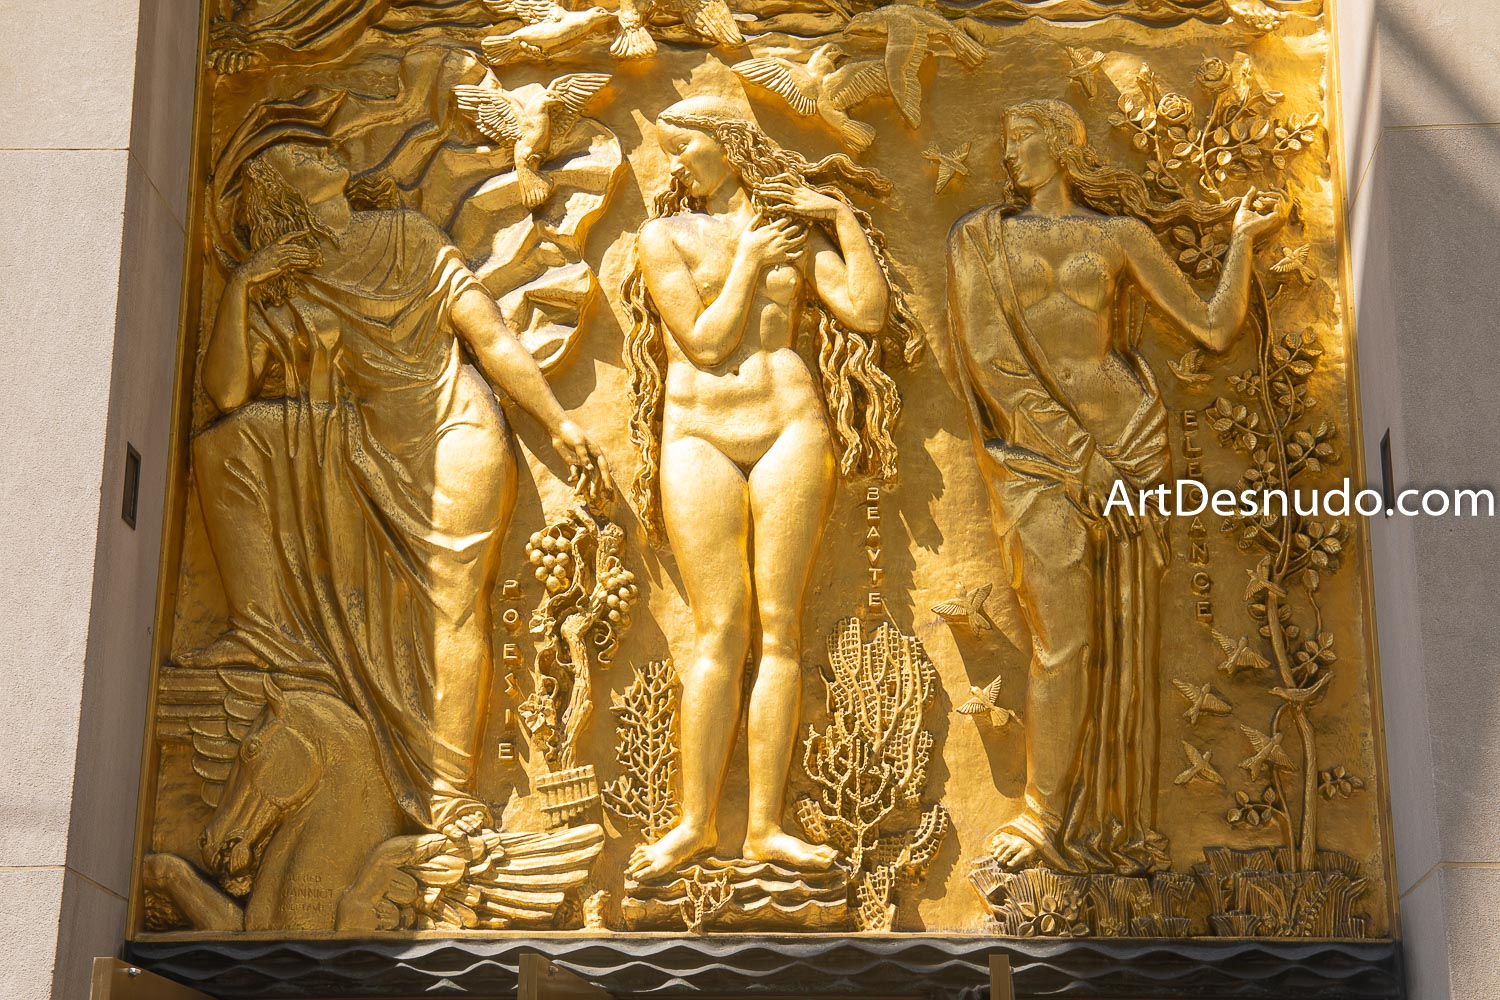 Wednesday, September 4, 2019 - Female nude art. La Maison Francaise. Rockefeller Center. Manhattan, New York City.